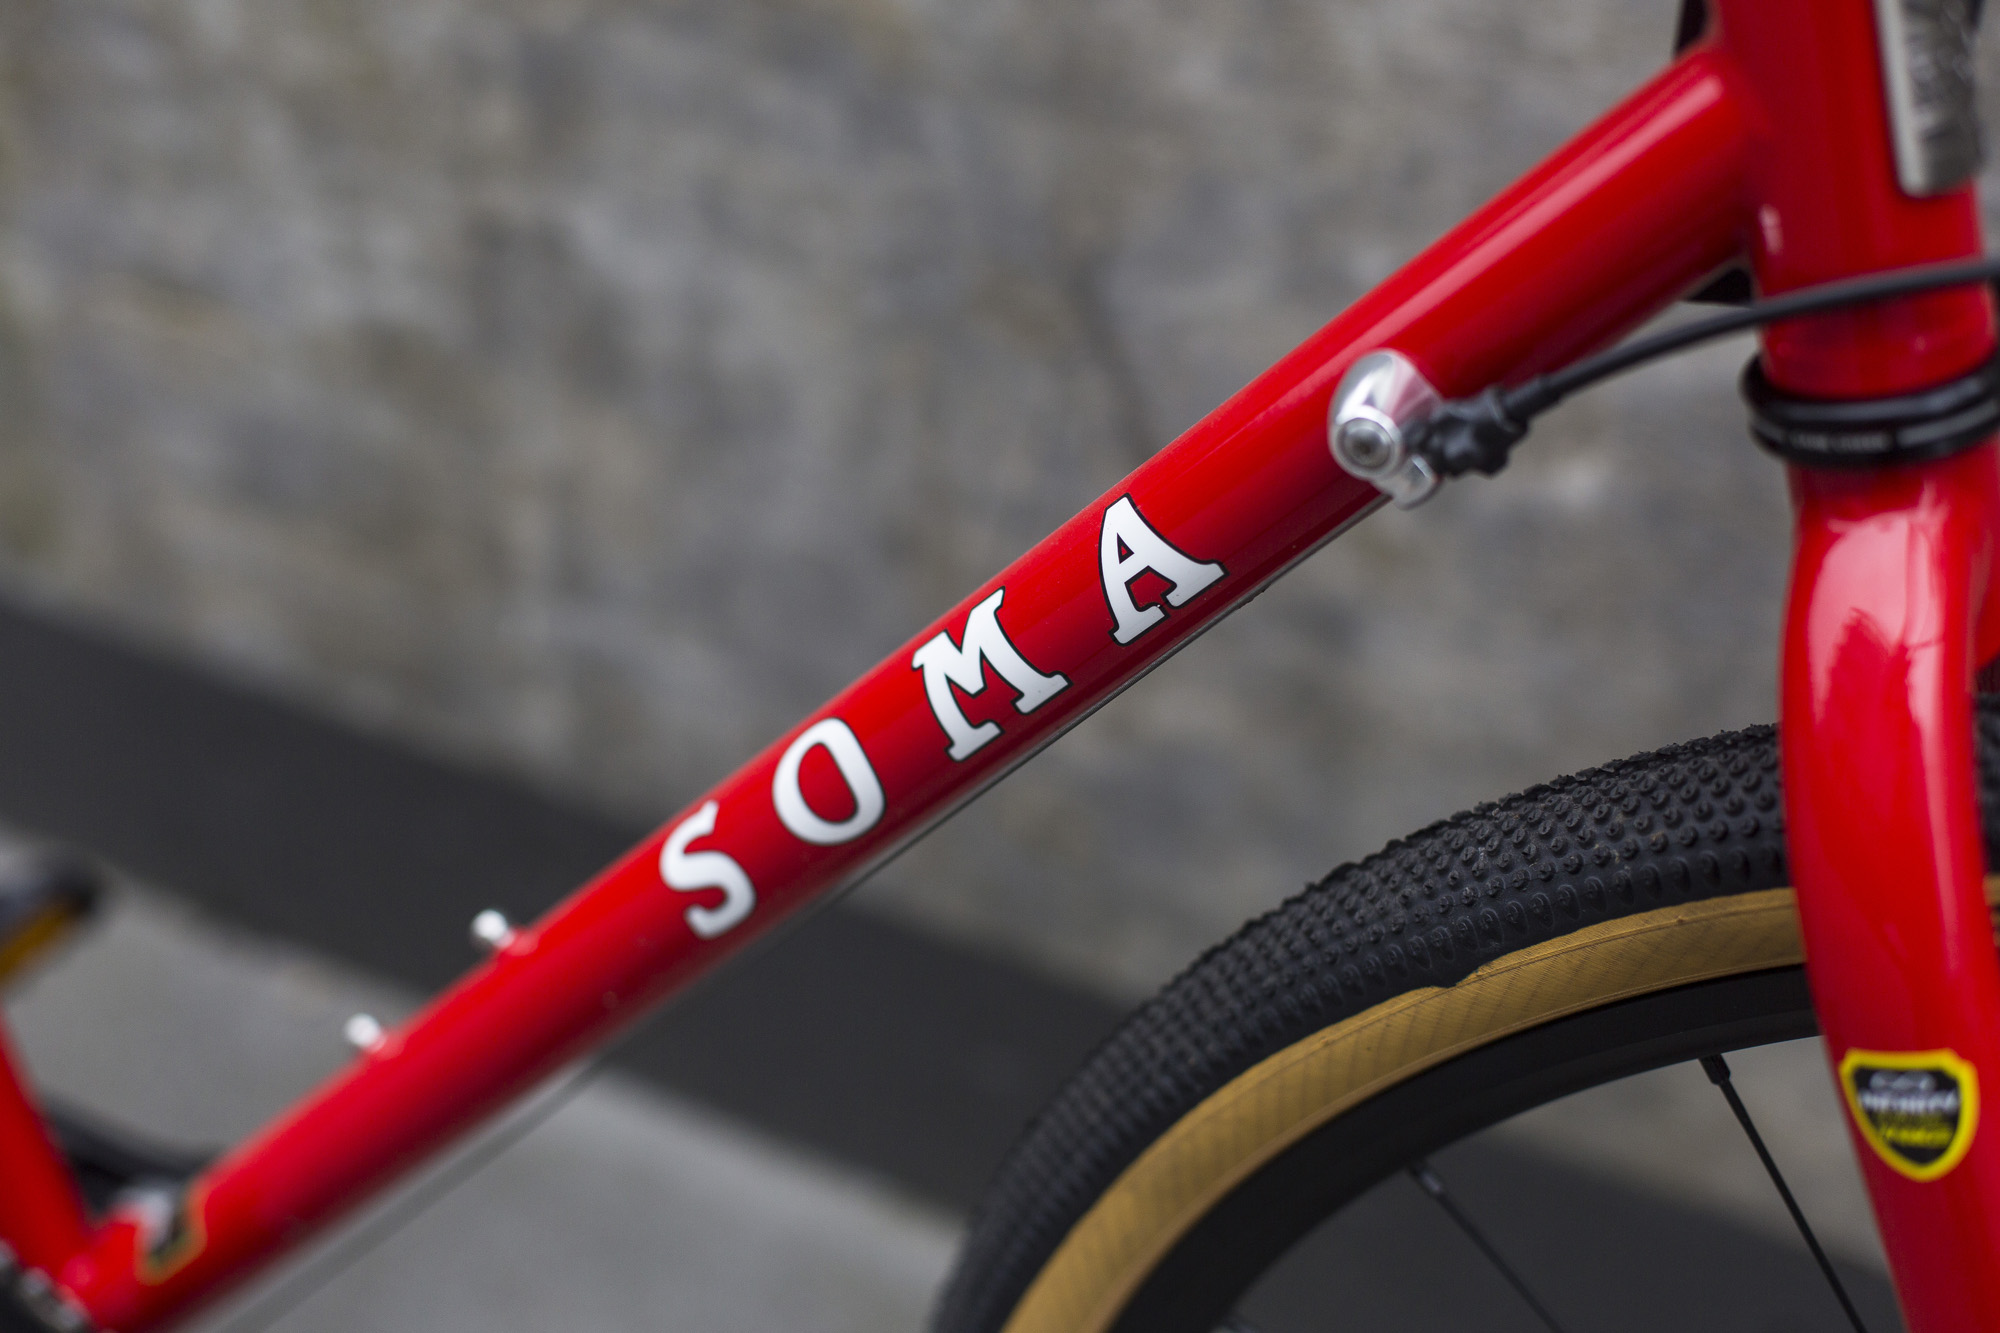 seabass-cycles-bikes-instore-5-february-2019-soma-fab-cycles-wolverine-00185.jpg